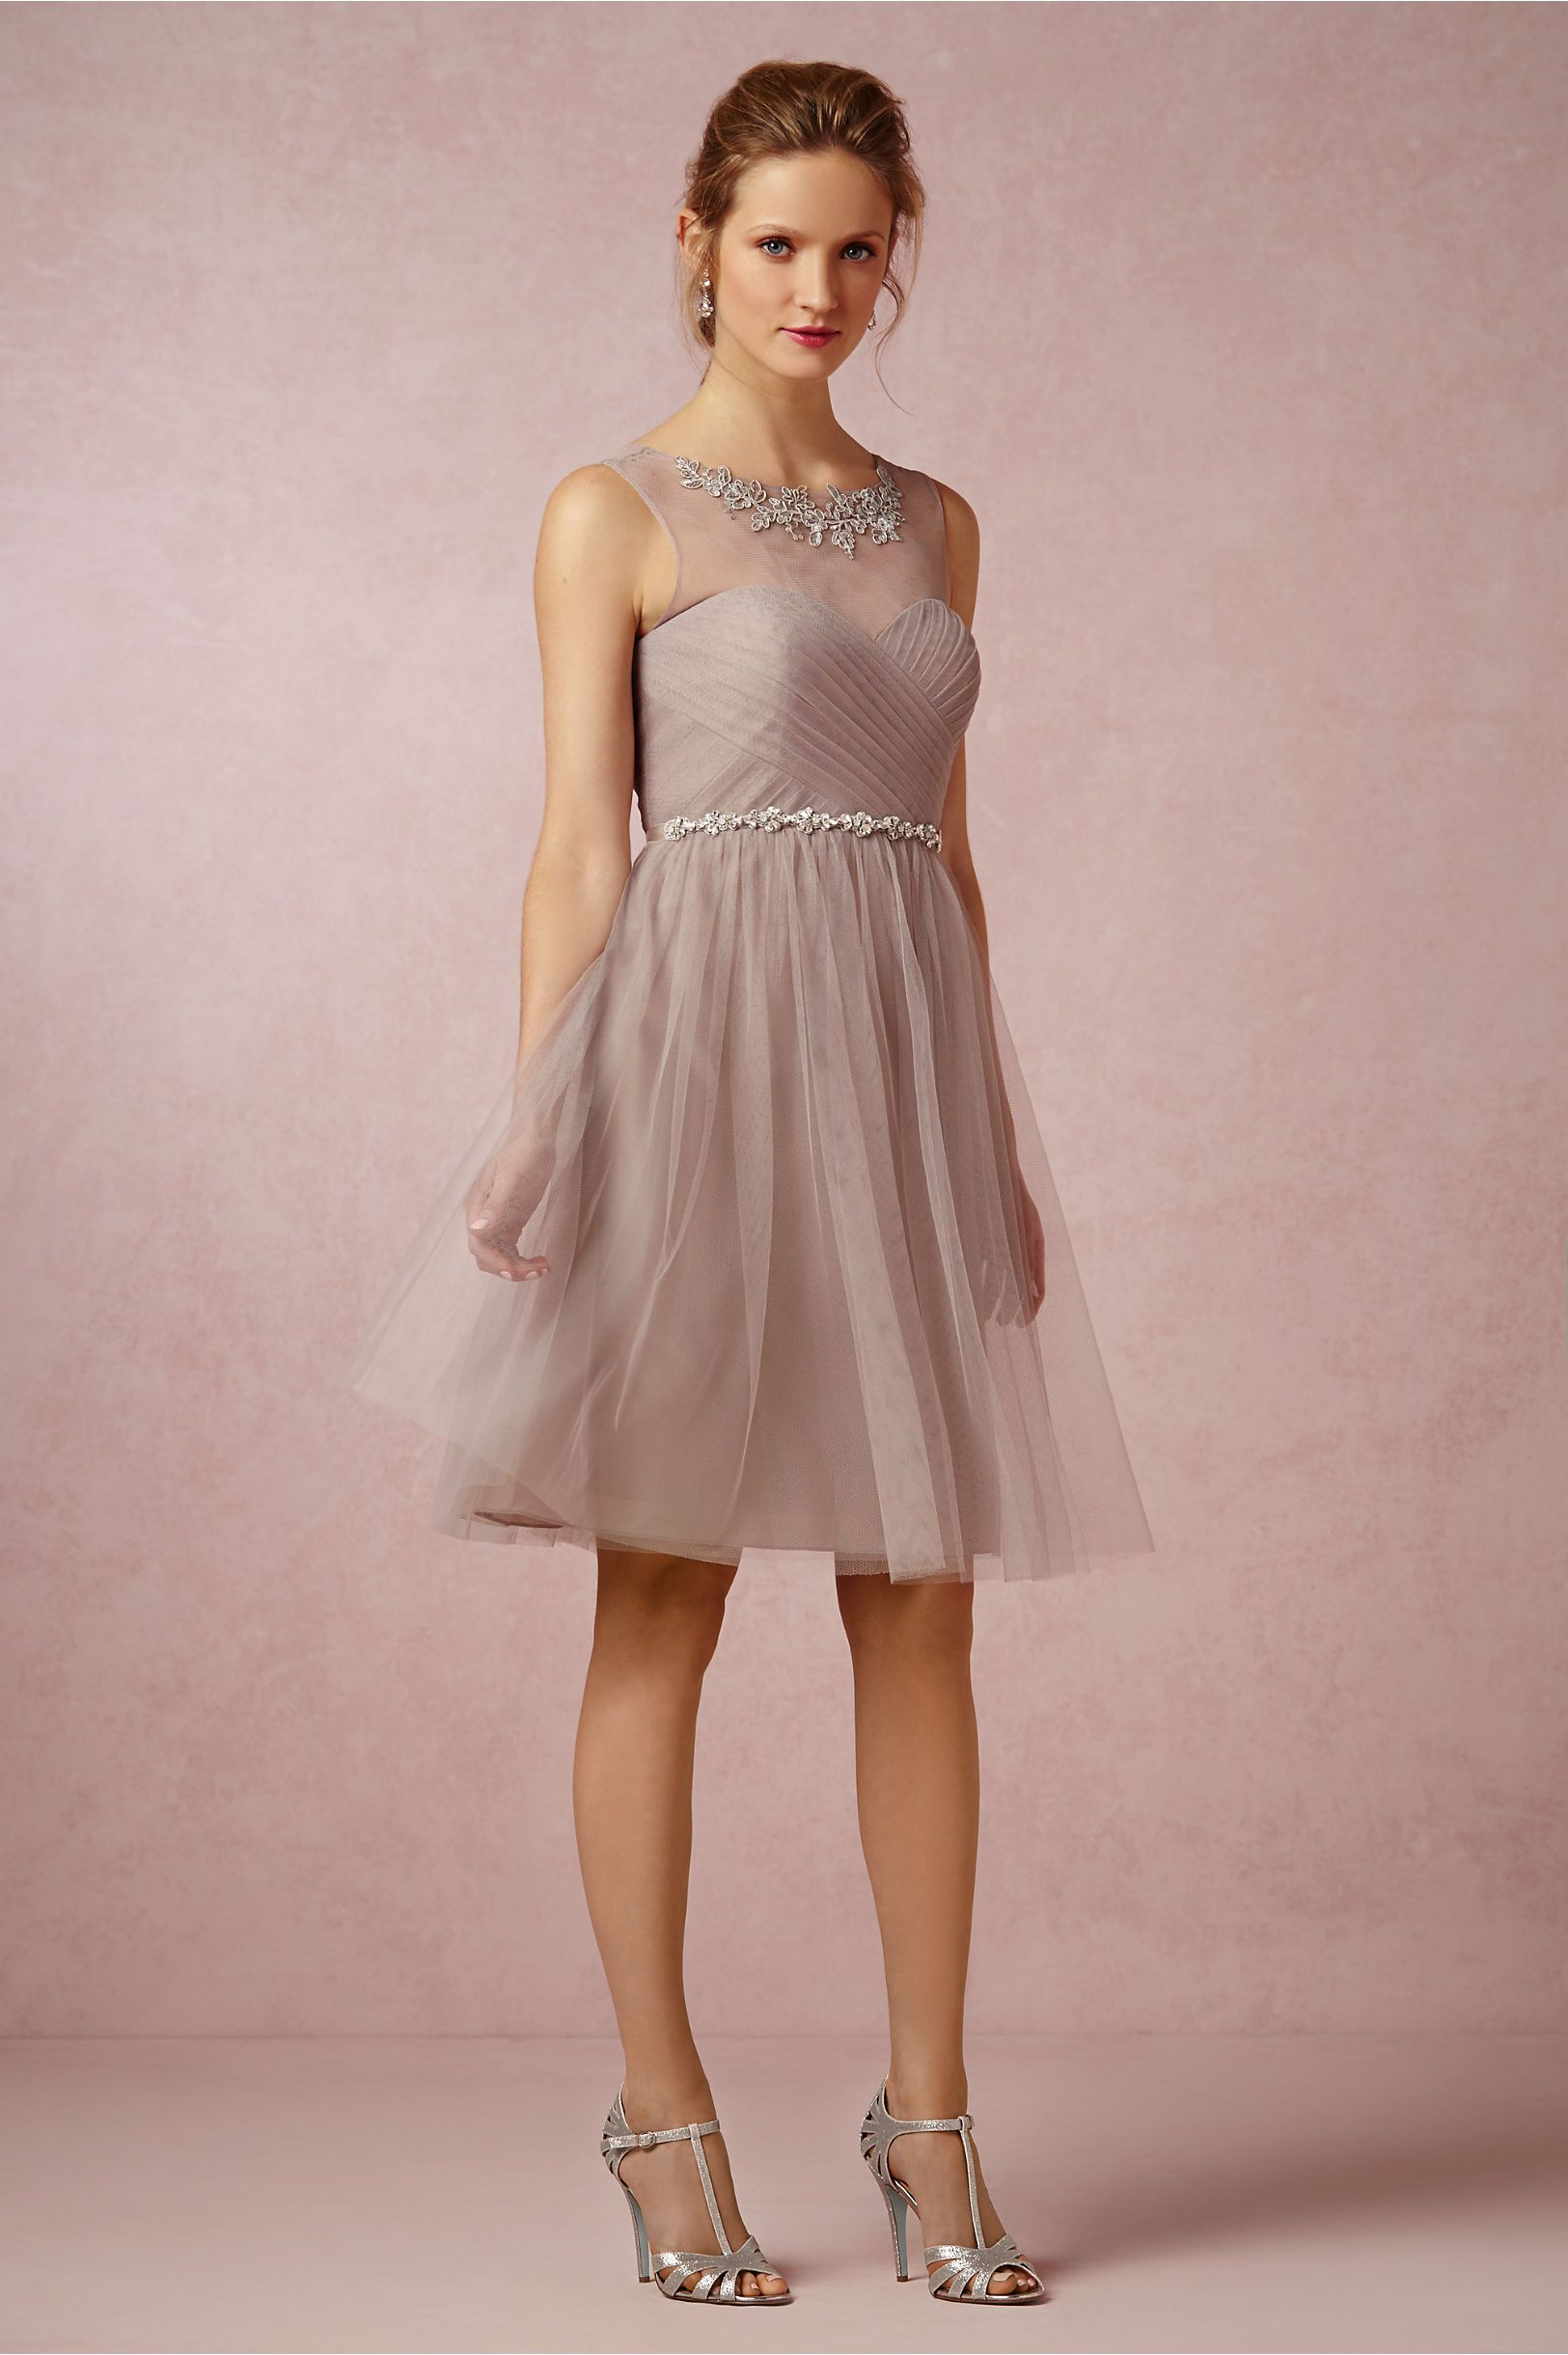 Chloe dress in bridal party u guests bridesmaids at bhldn winter